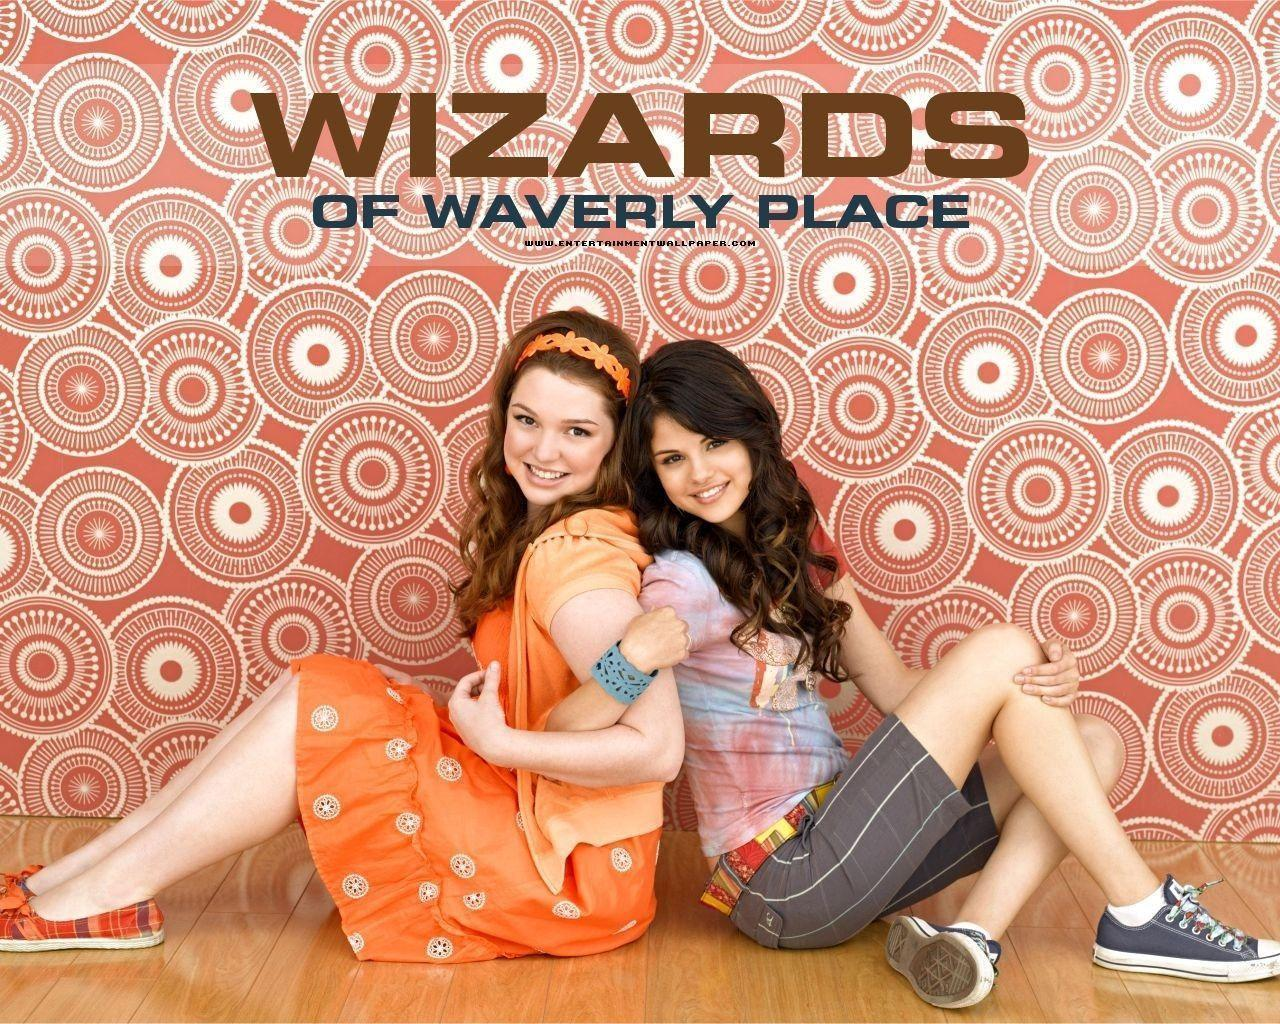 Wizards of waverly place wallpapers wallpaper cave for Waverly wallpaper